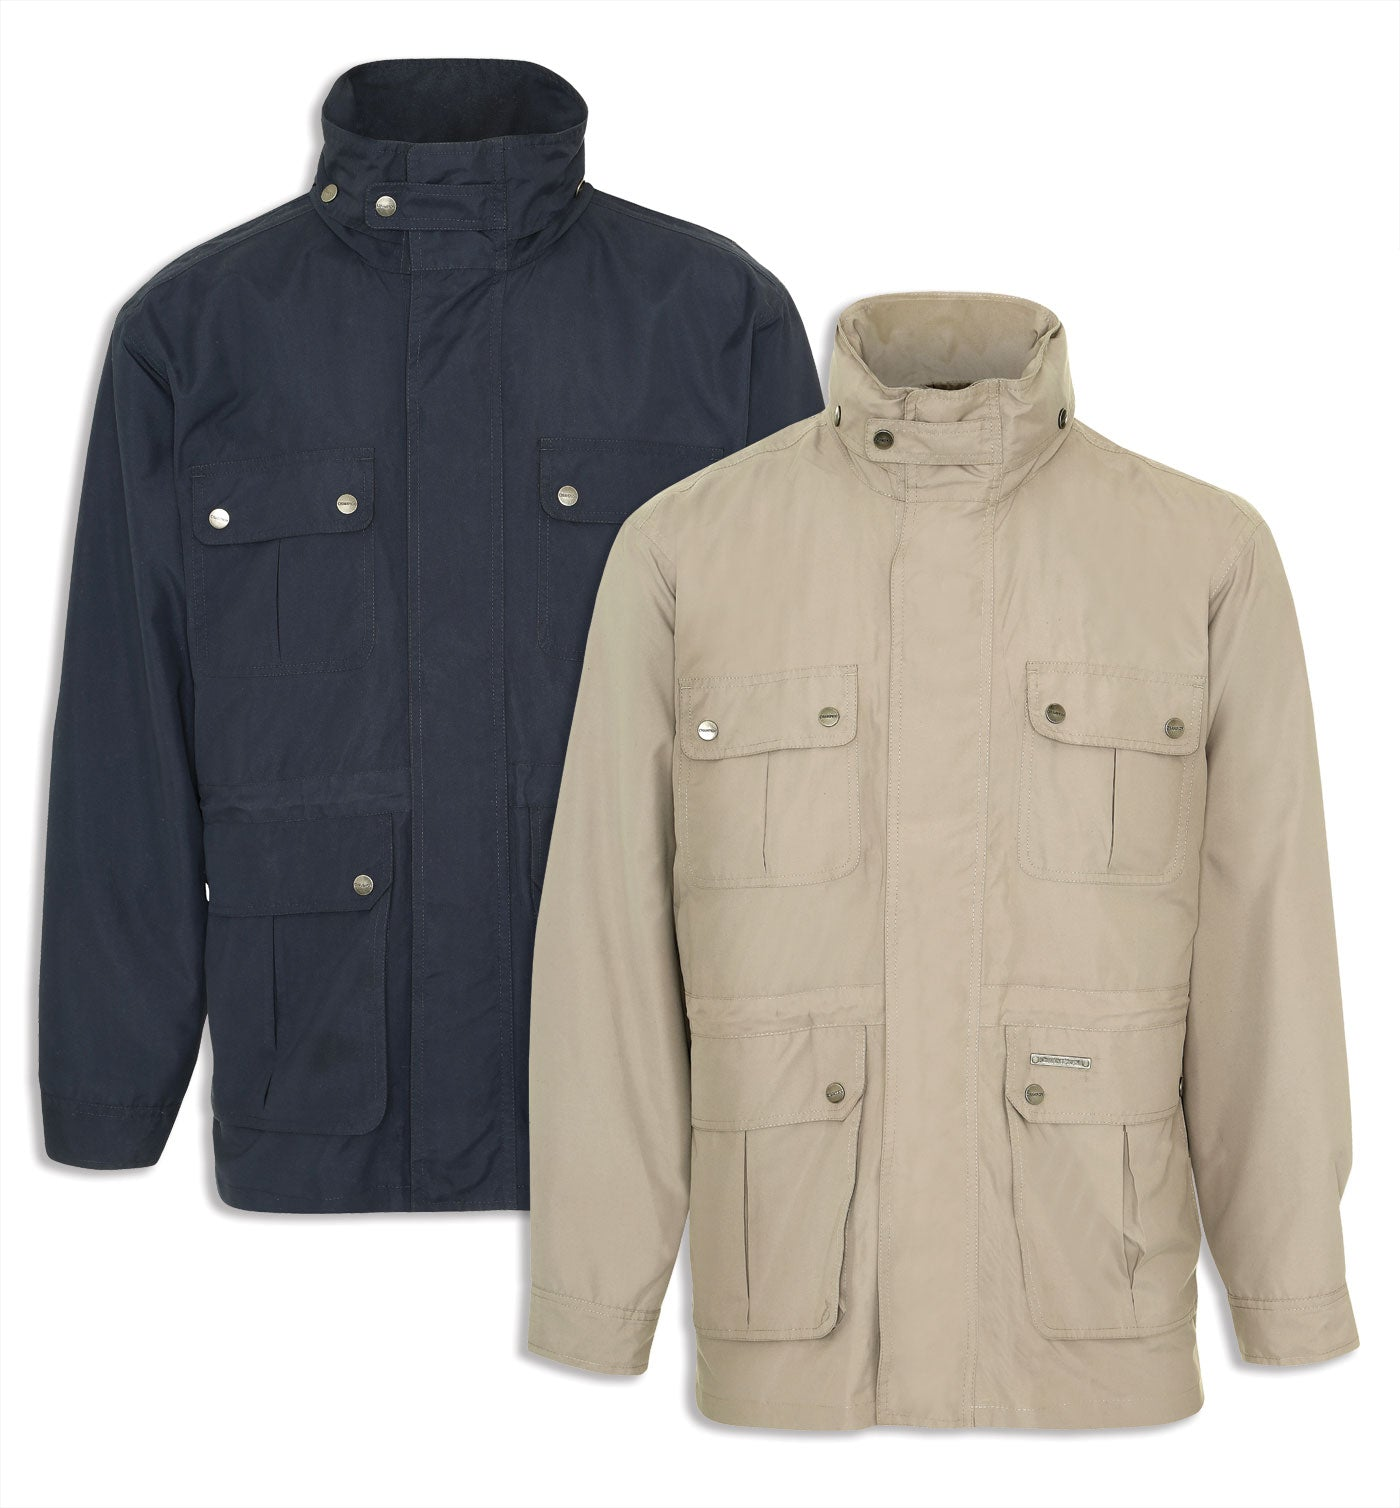 Champion Pevensey multi pocket jacket in navy and stone